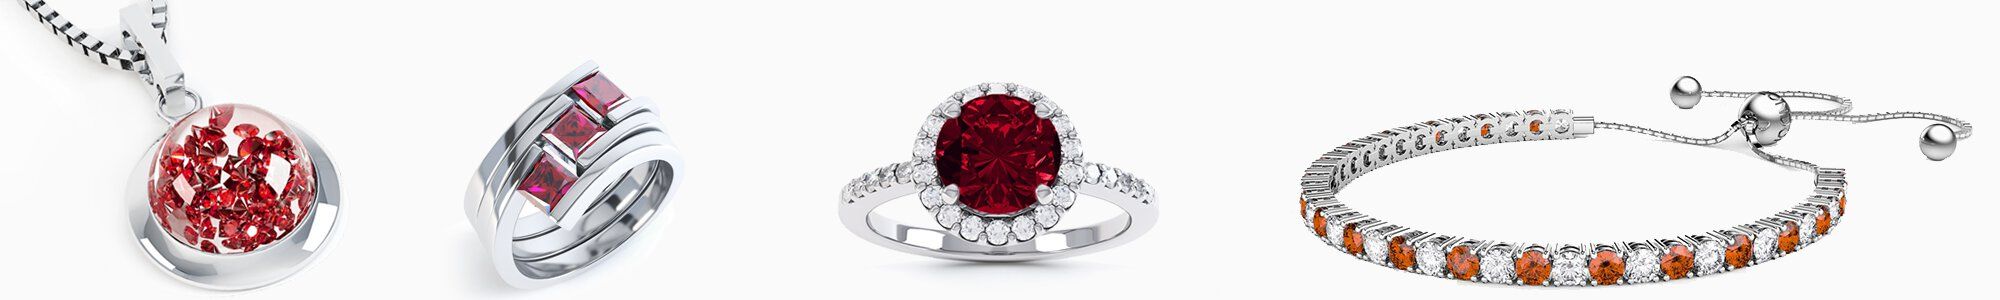 Garnet Jewellery - Wide Selection of Topaz Earrings, Pendants, Engagement Rings, Bracelets and Necklaces